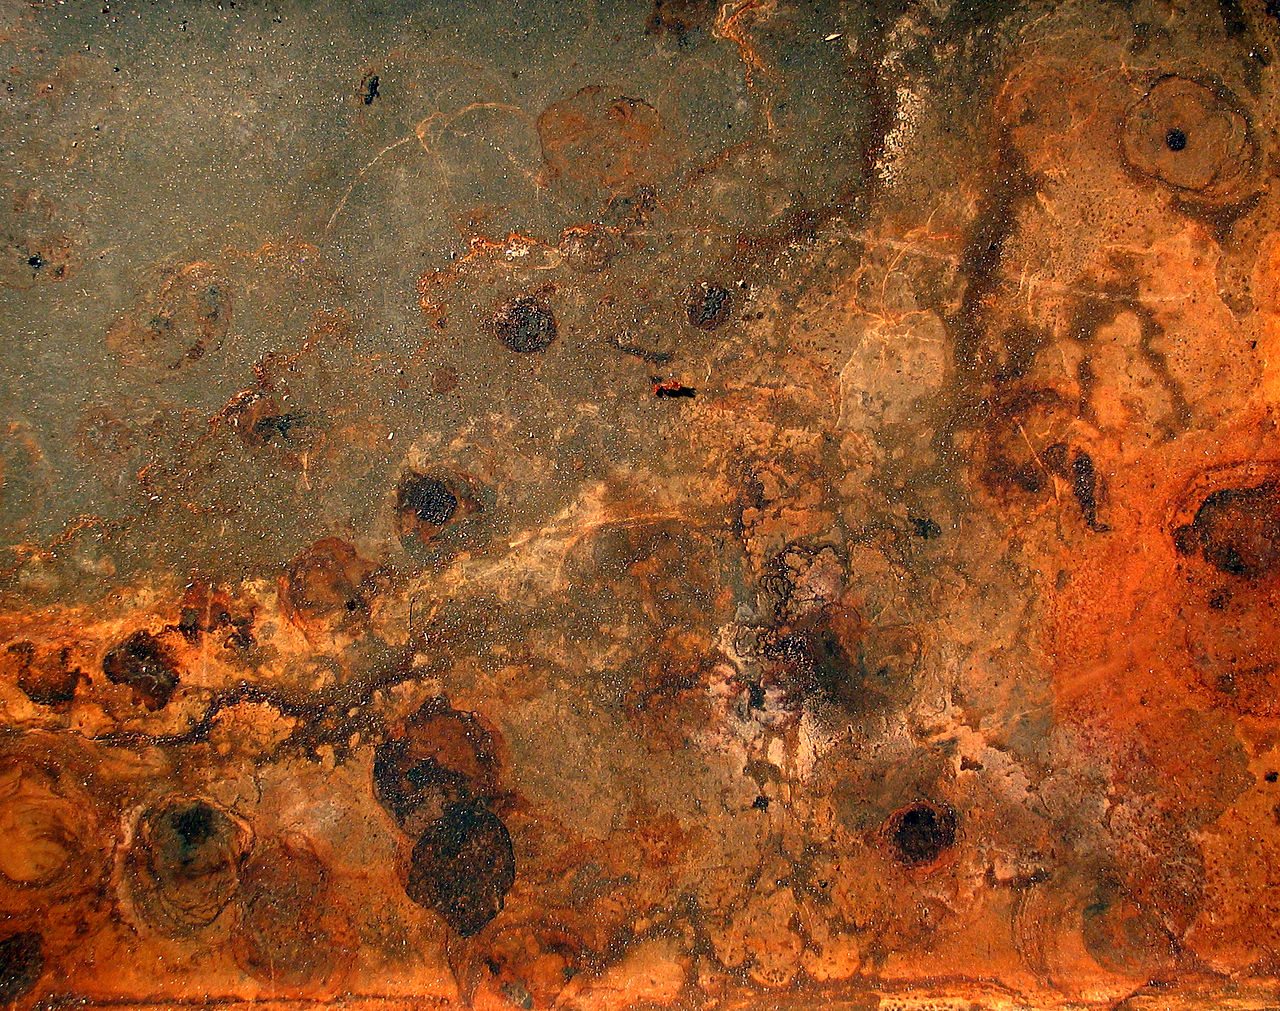 A photograph of rust and dirt.